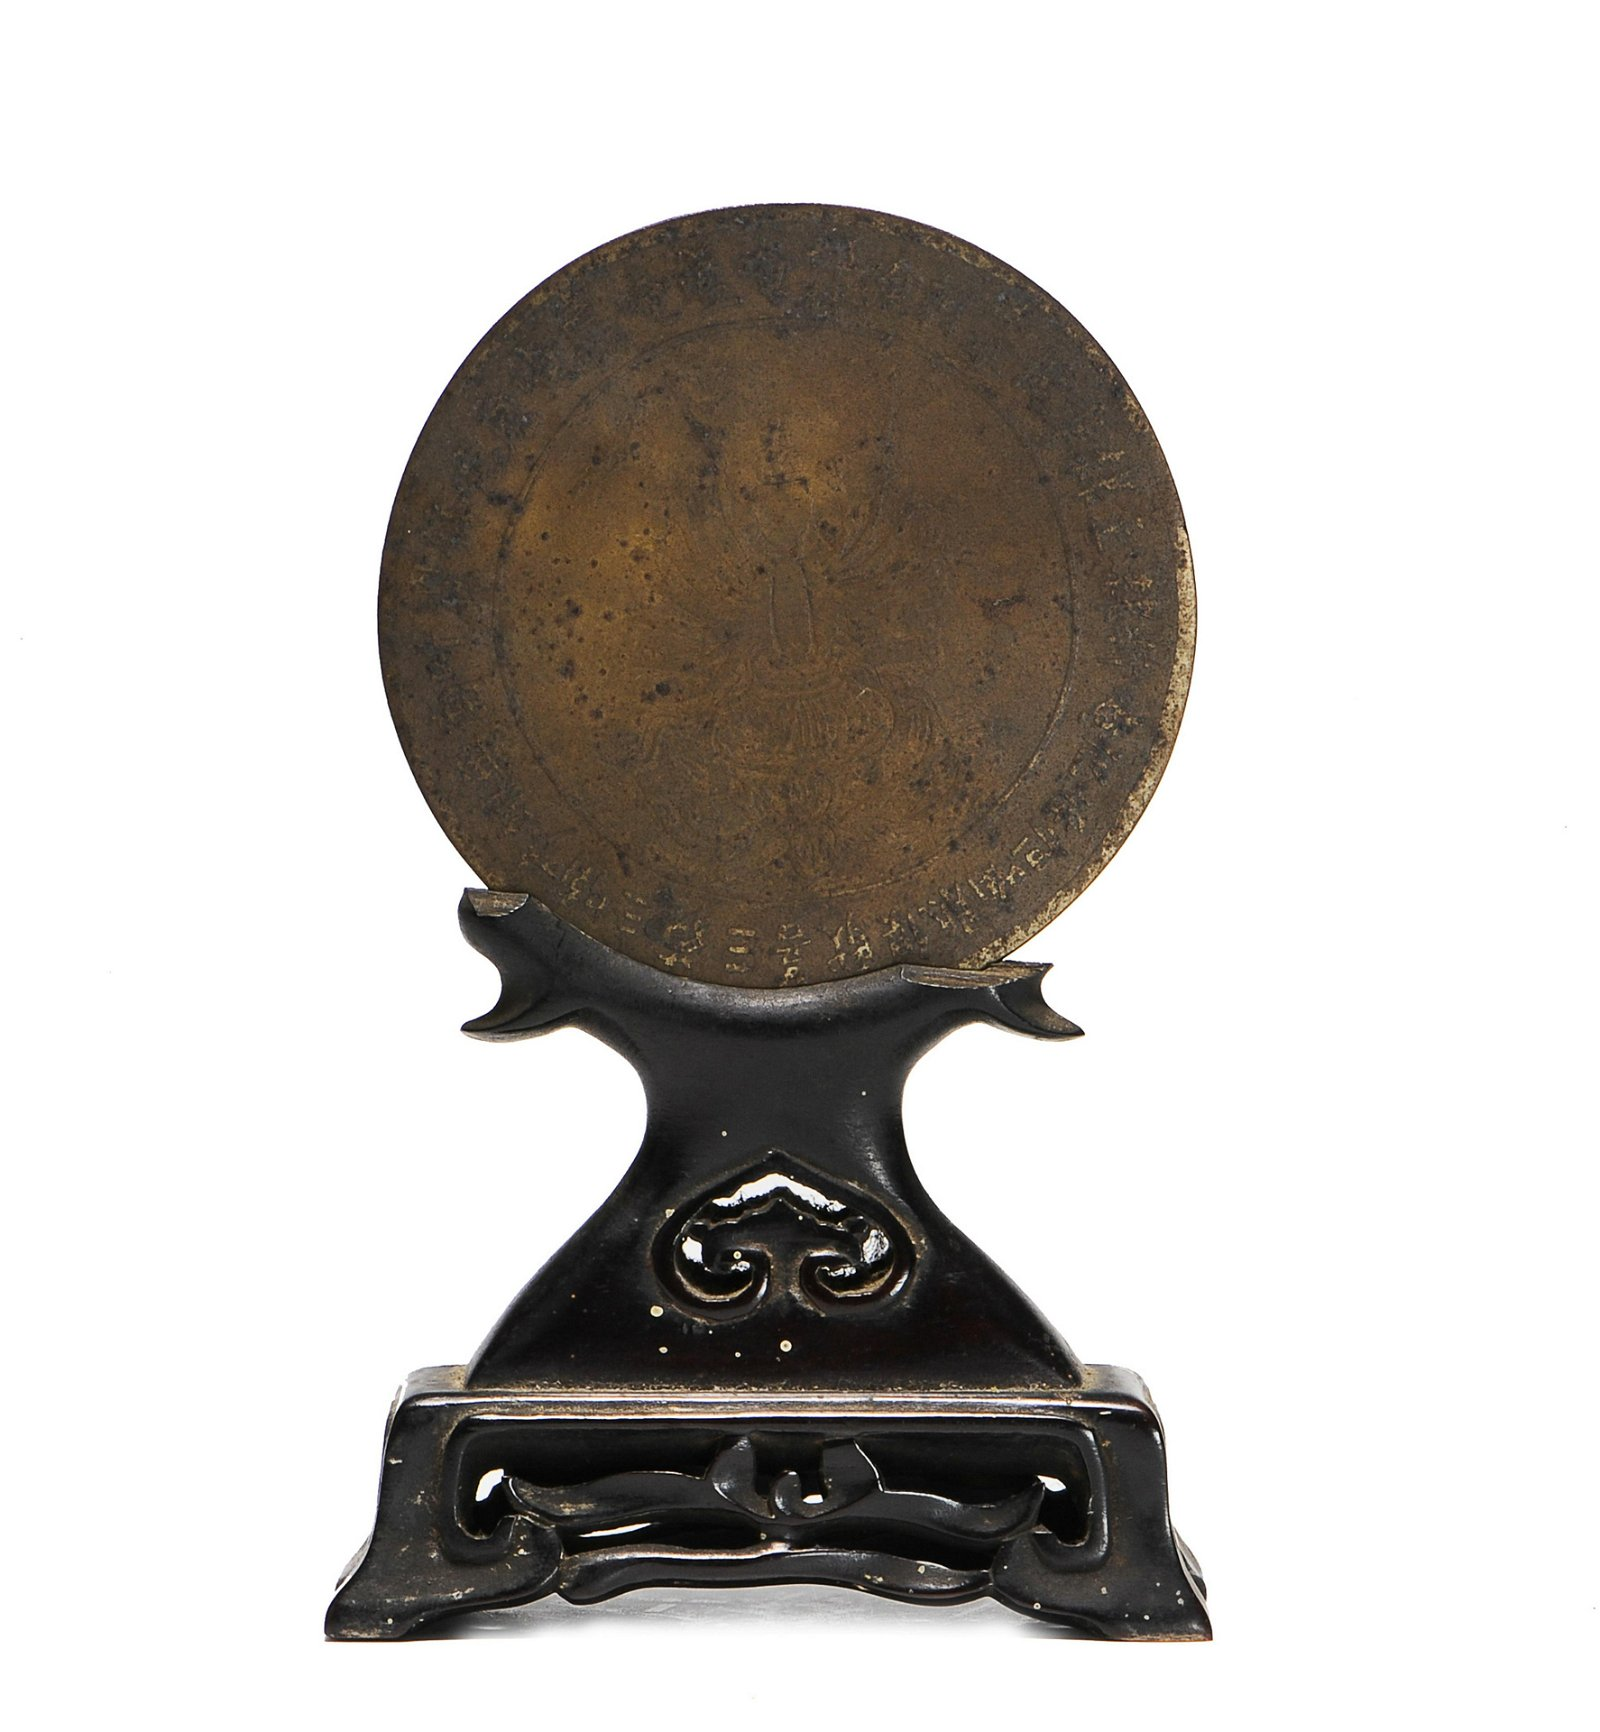 Chinese Bronze Mirror on a Wooden Stand, 18th Century